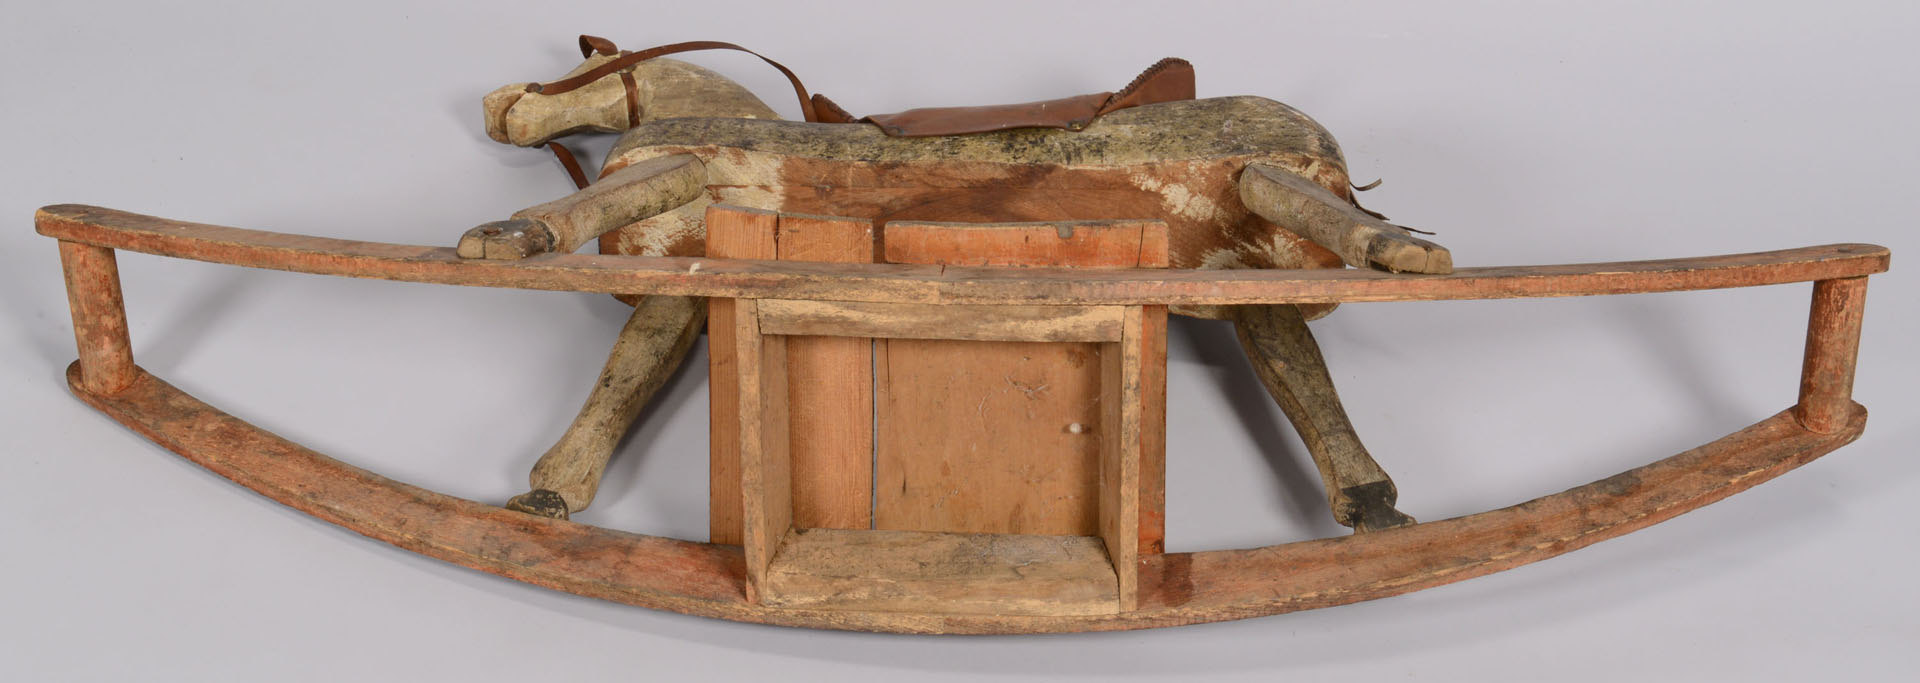 Lot 651: Painted wood rocking horse, late 19th c.